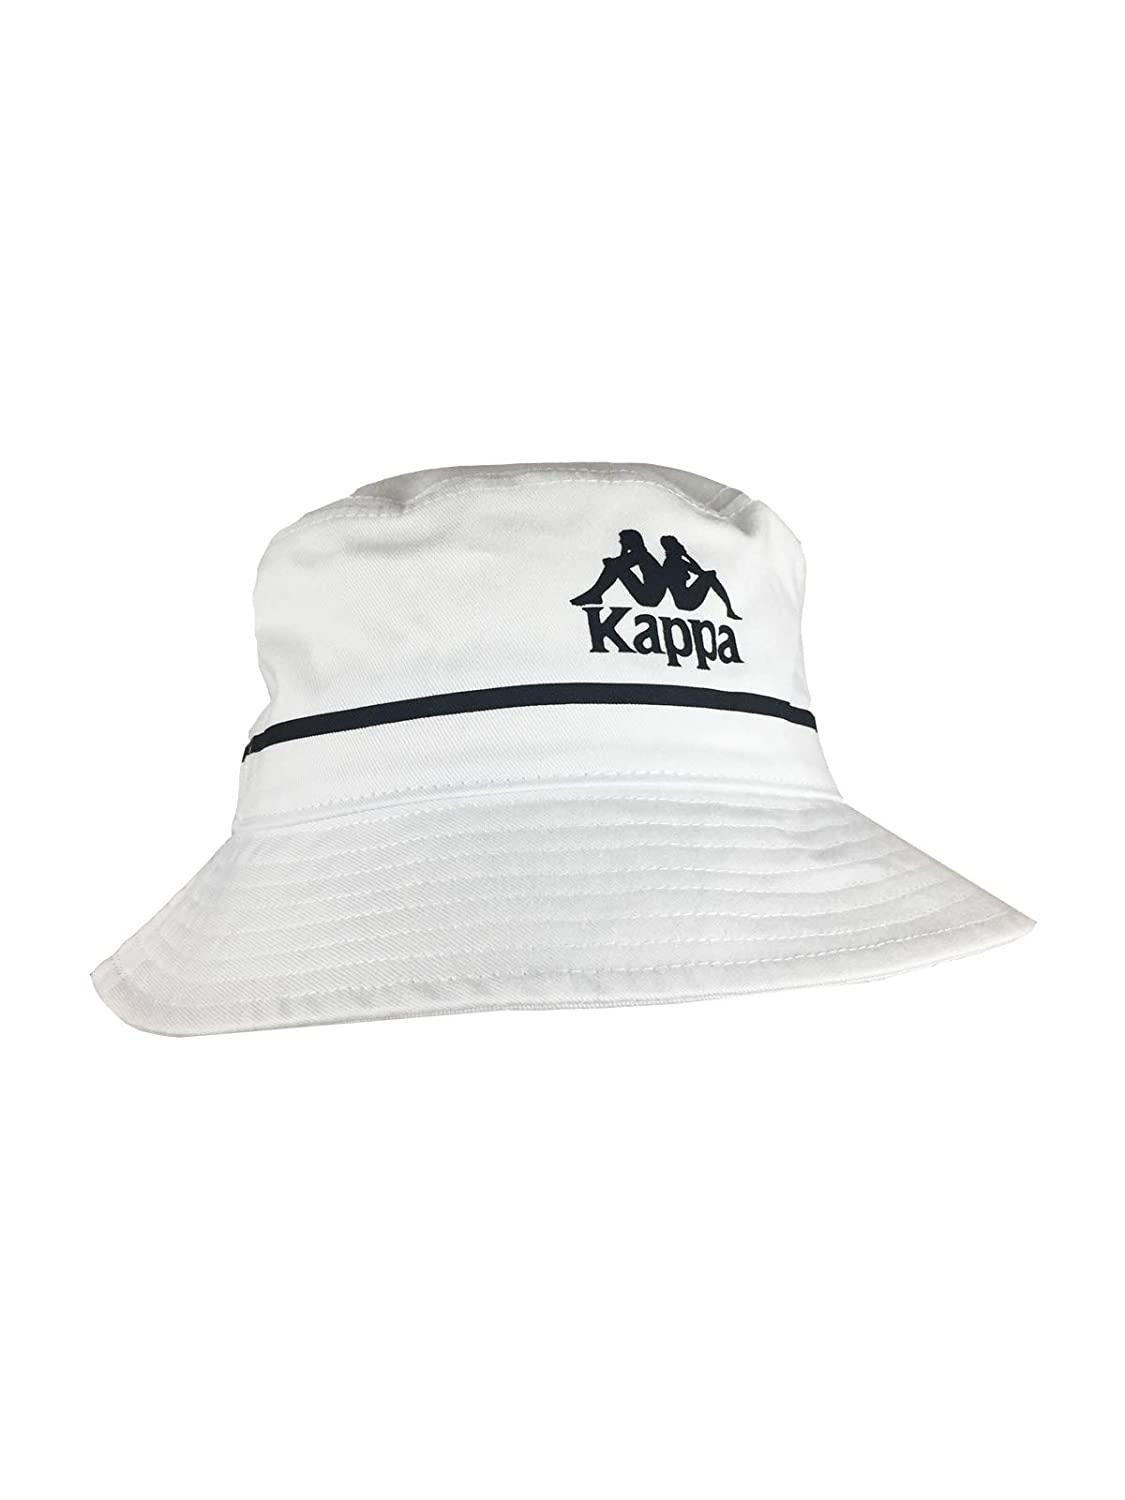 0a8fdbfed68f4 Kappa Authentic Bucketo Bucket Hat in White at Amazon Men s Clothing store